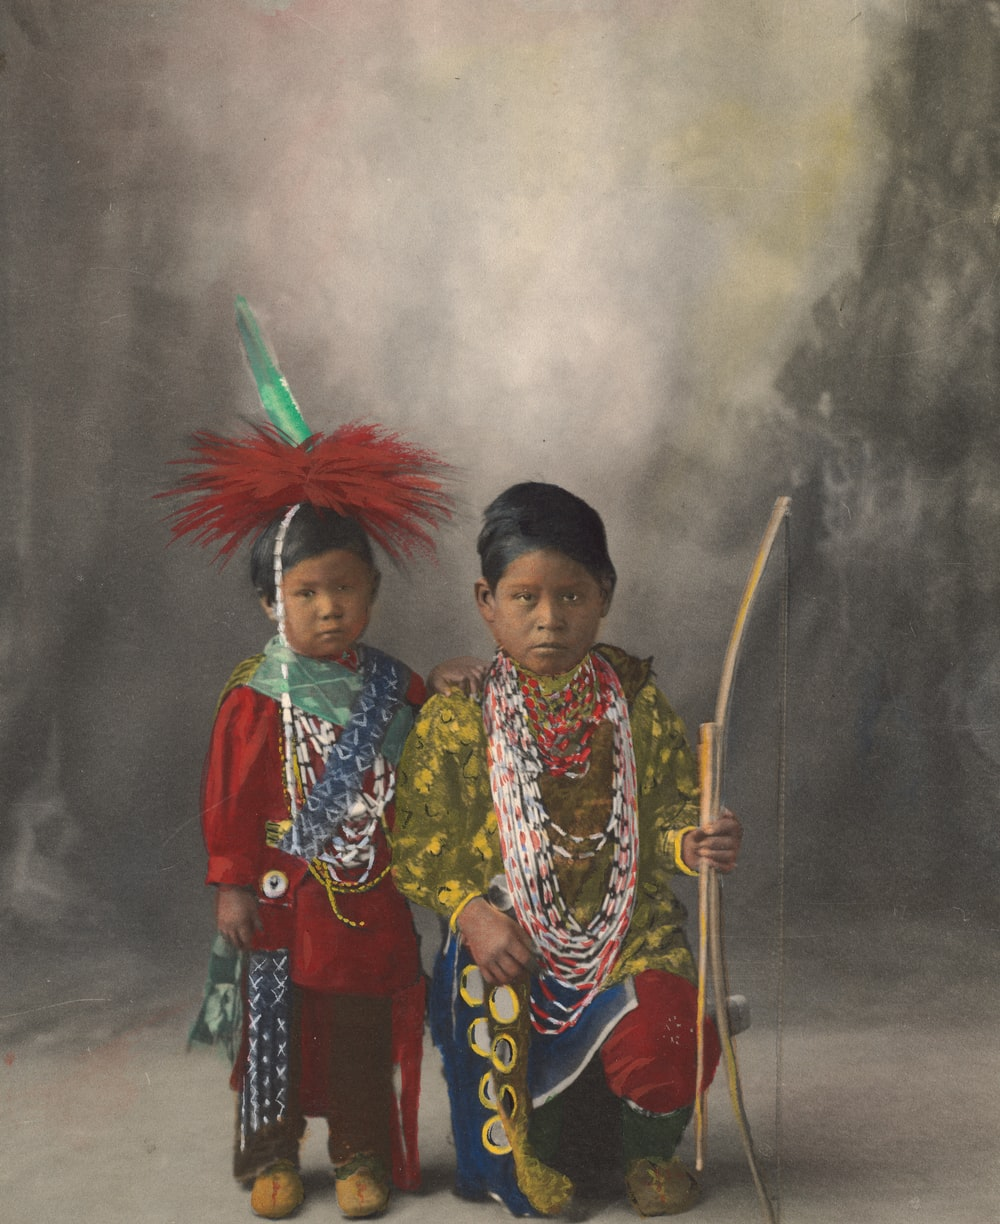 2 women in traditional dress holding stick